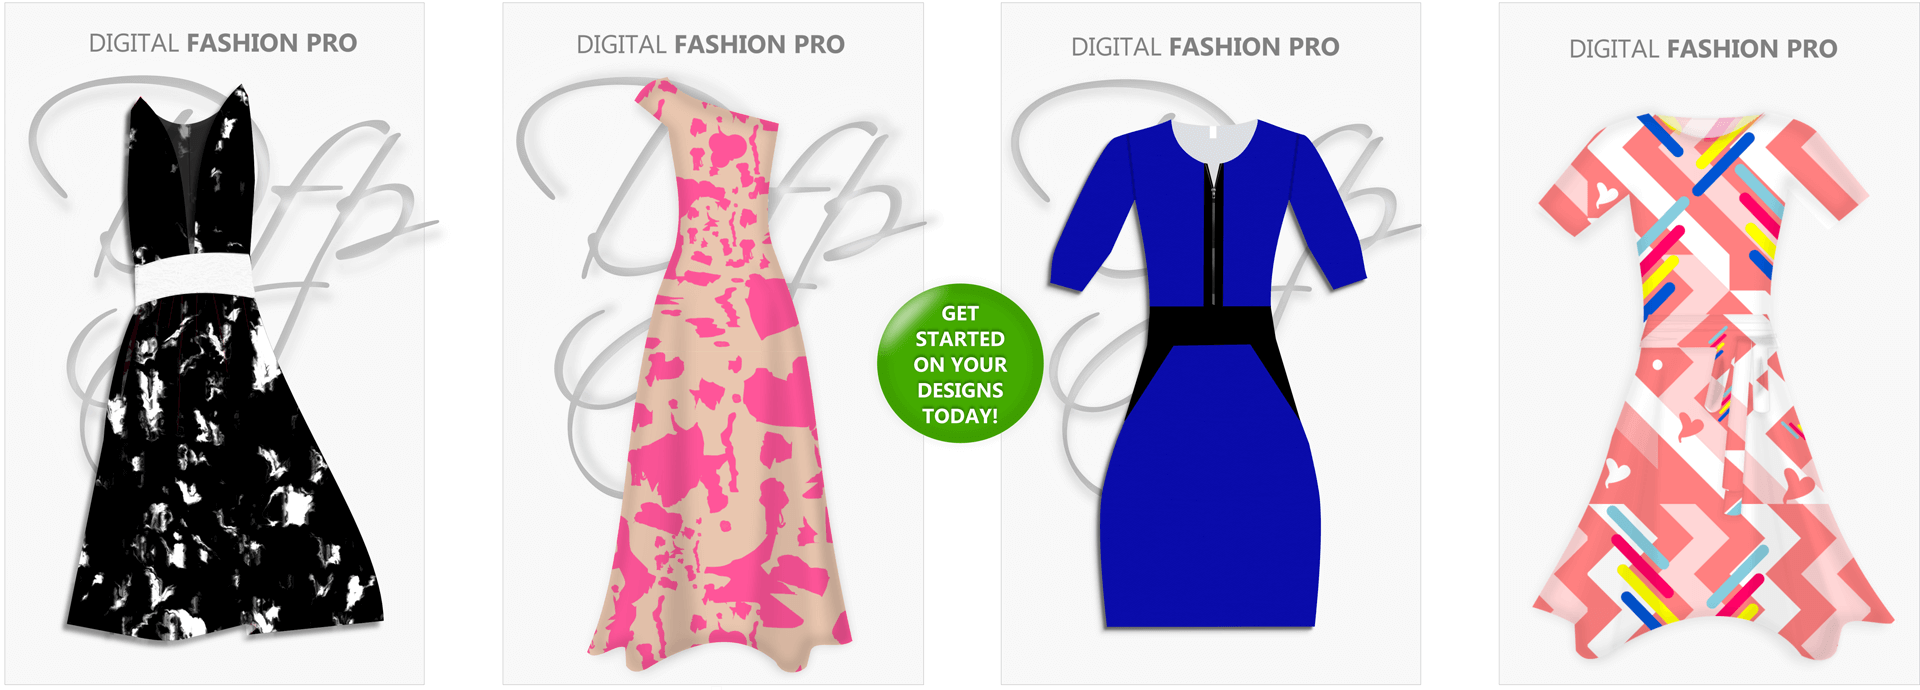 Fashion Design Software - Design Clothing - Start a clothing line - Digital Fashion Pro